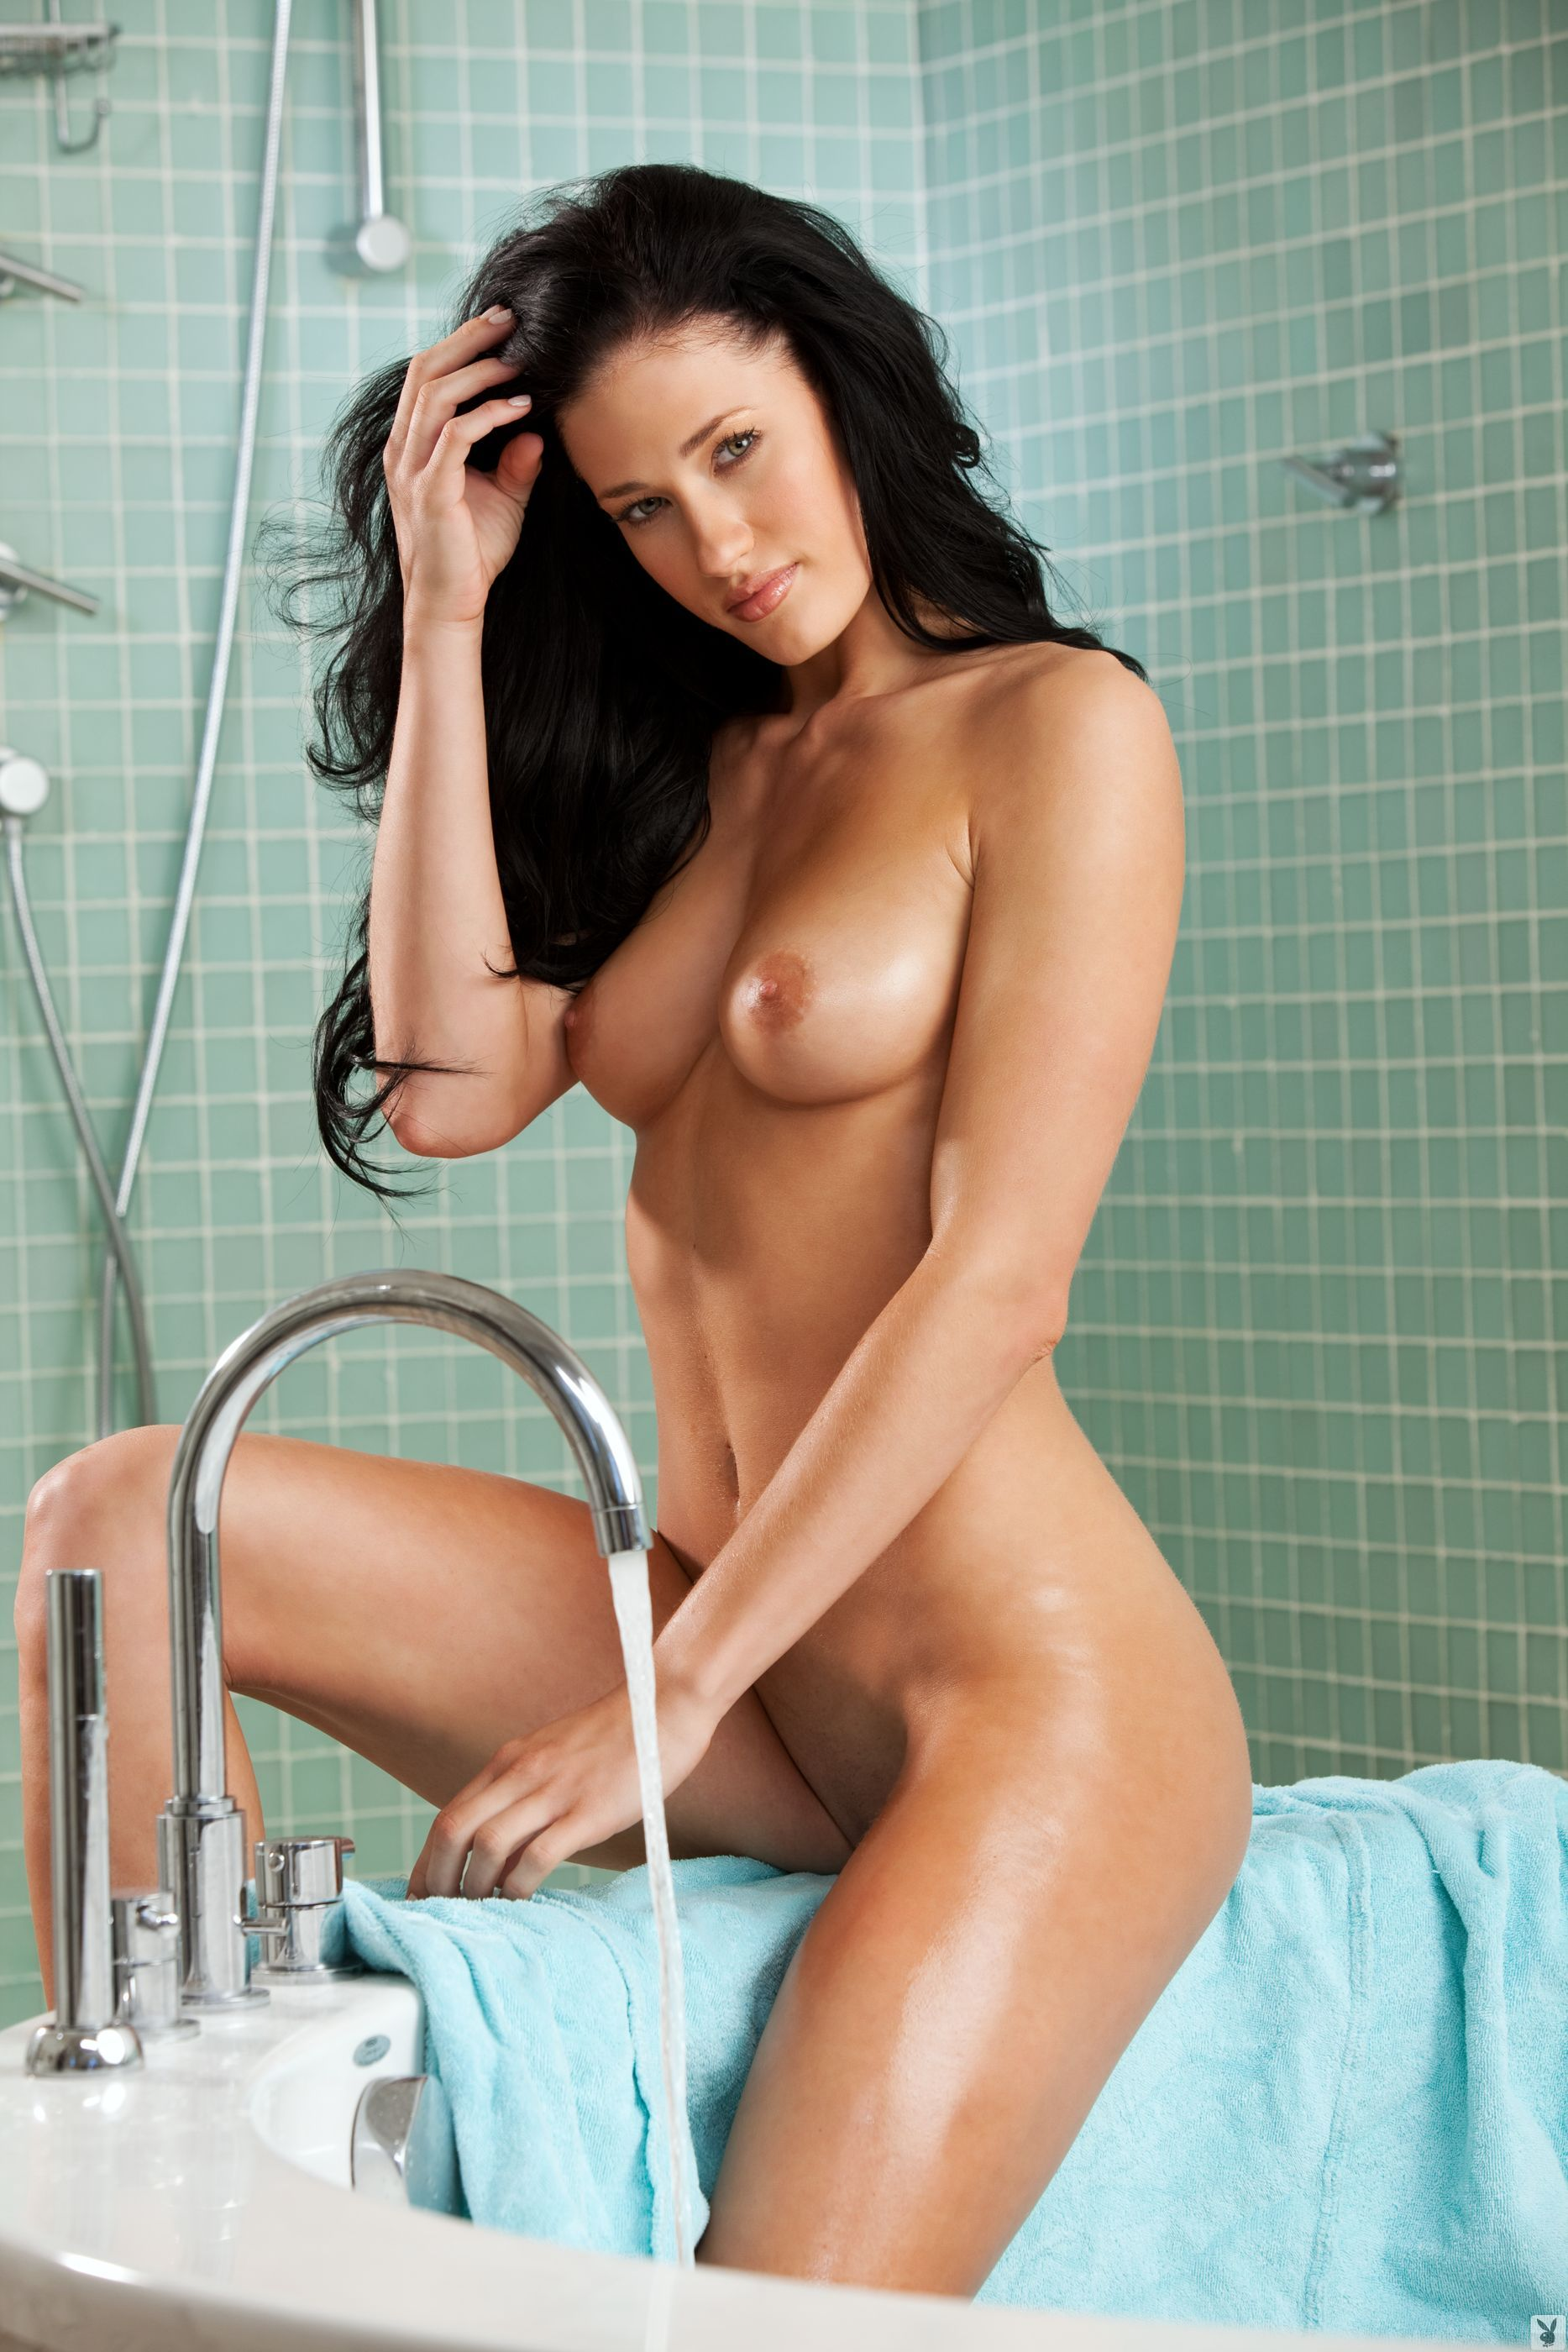 ashton-winters-brunette-nude-bathroom-playboy-15